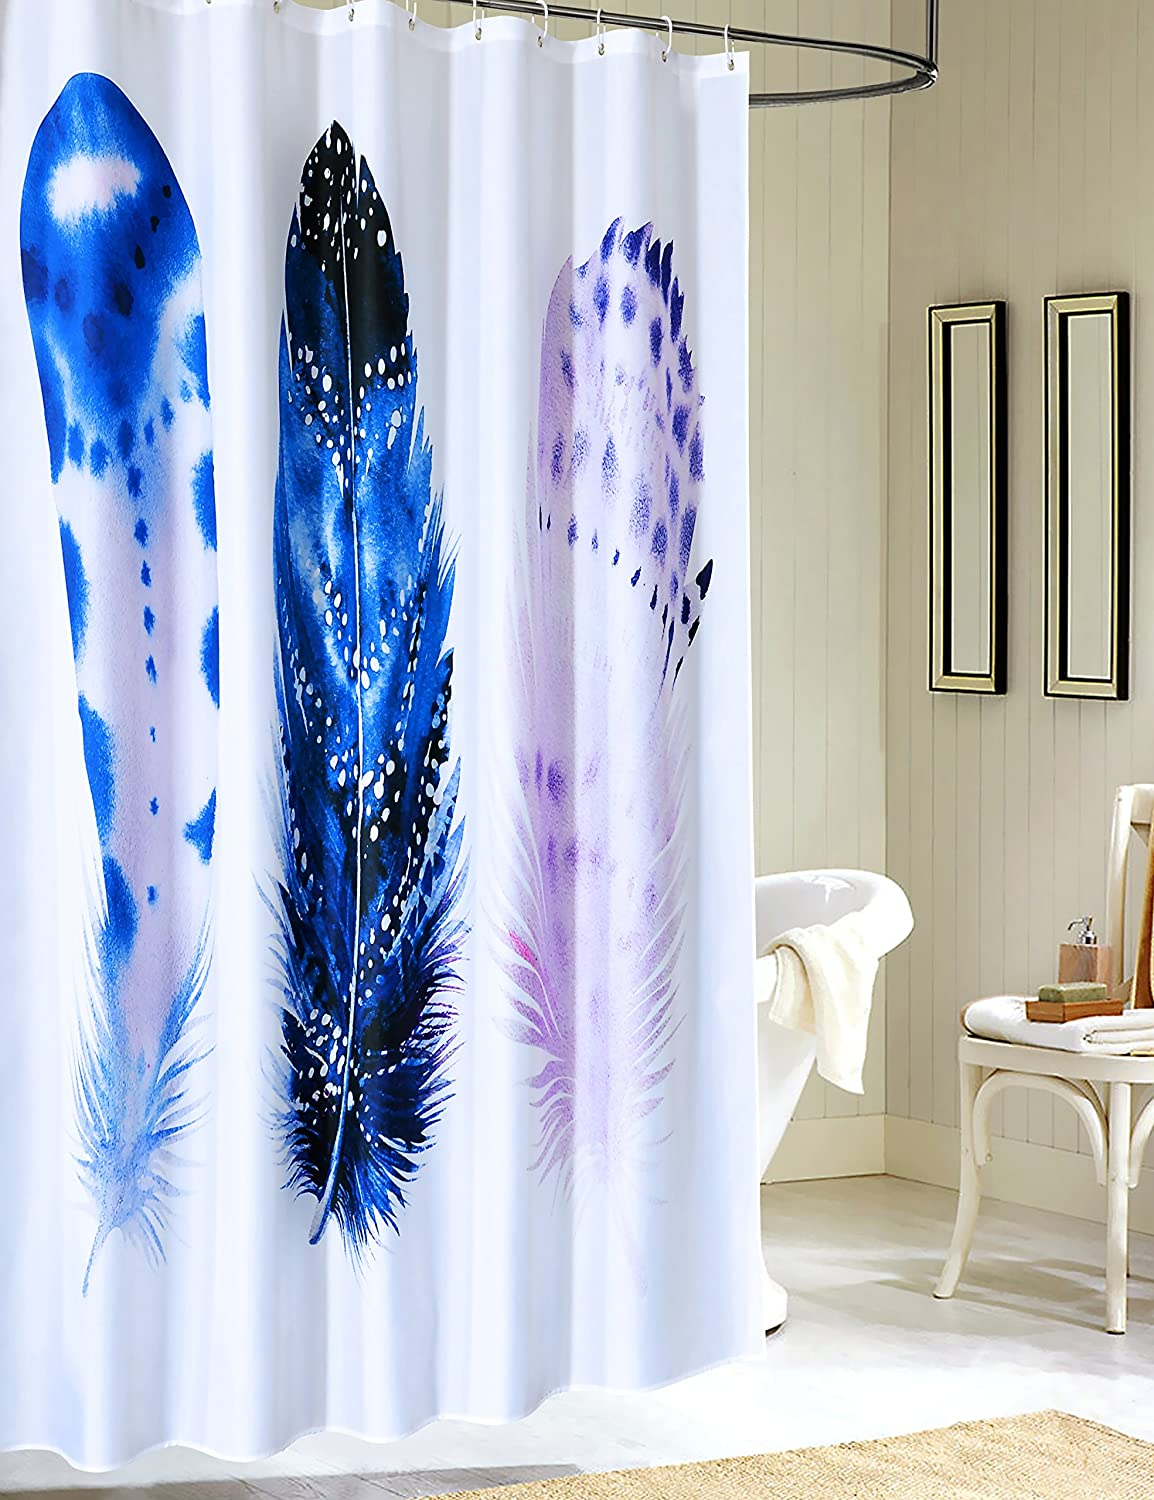 Amazon Kingmily Fabric Shower Curtain Extra Long Feather Art White Blue Purple 72 By 78 Inches Design 11 Home Kitchen